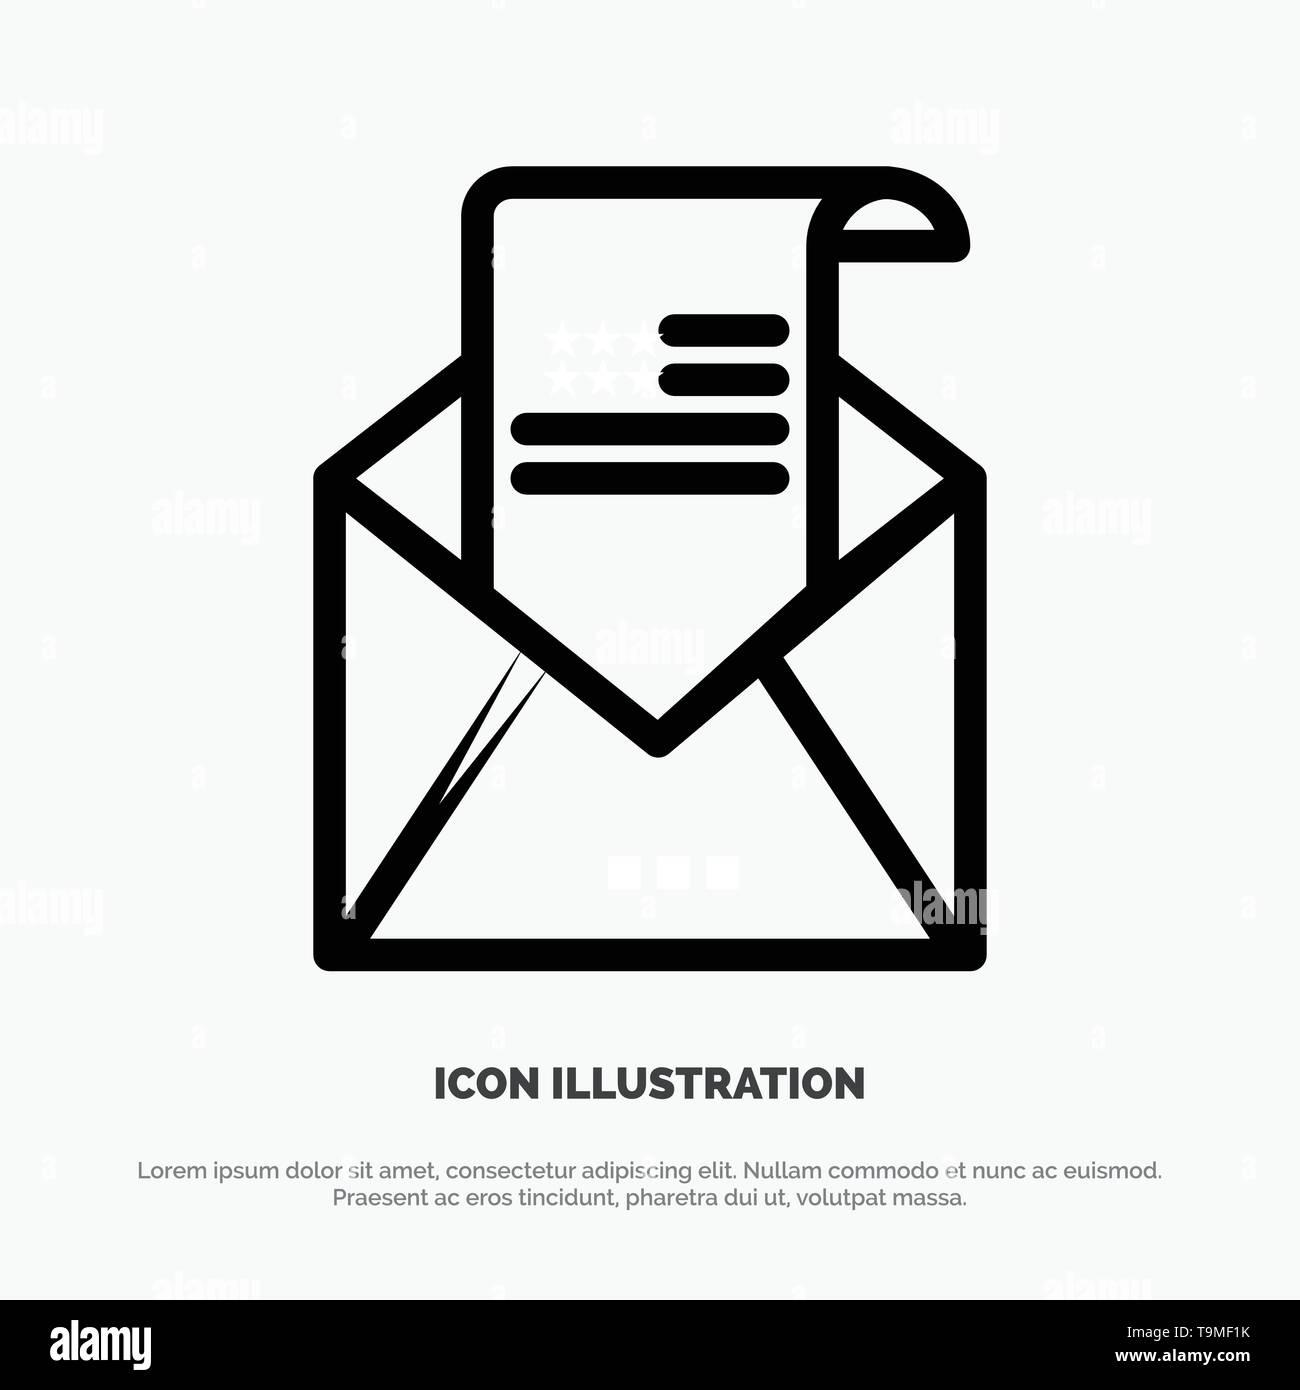 Email, Envelope, Greeting, Invitation, Mail Line Icon Vector - Stock Image